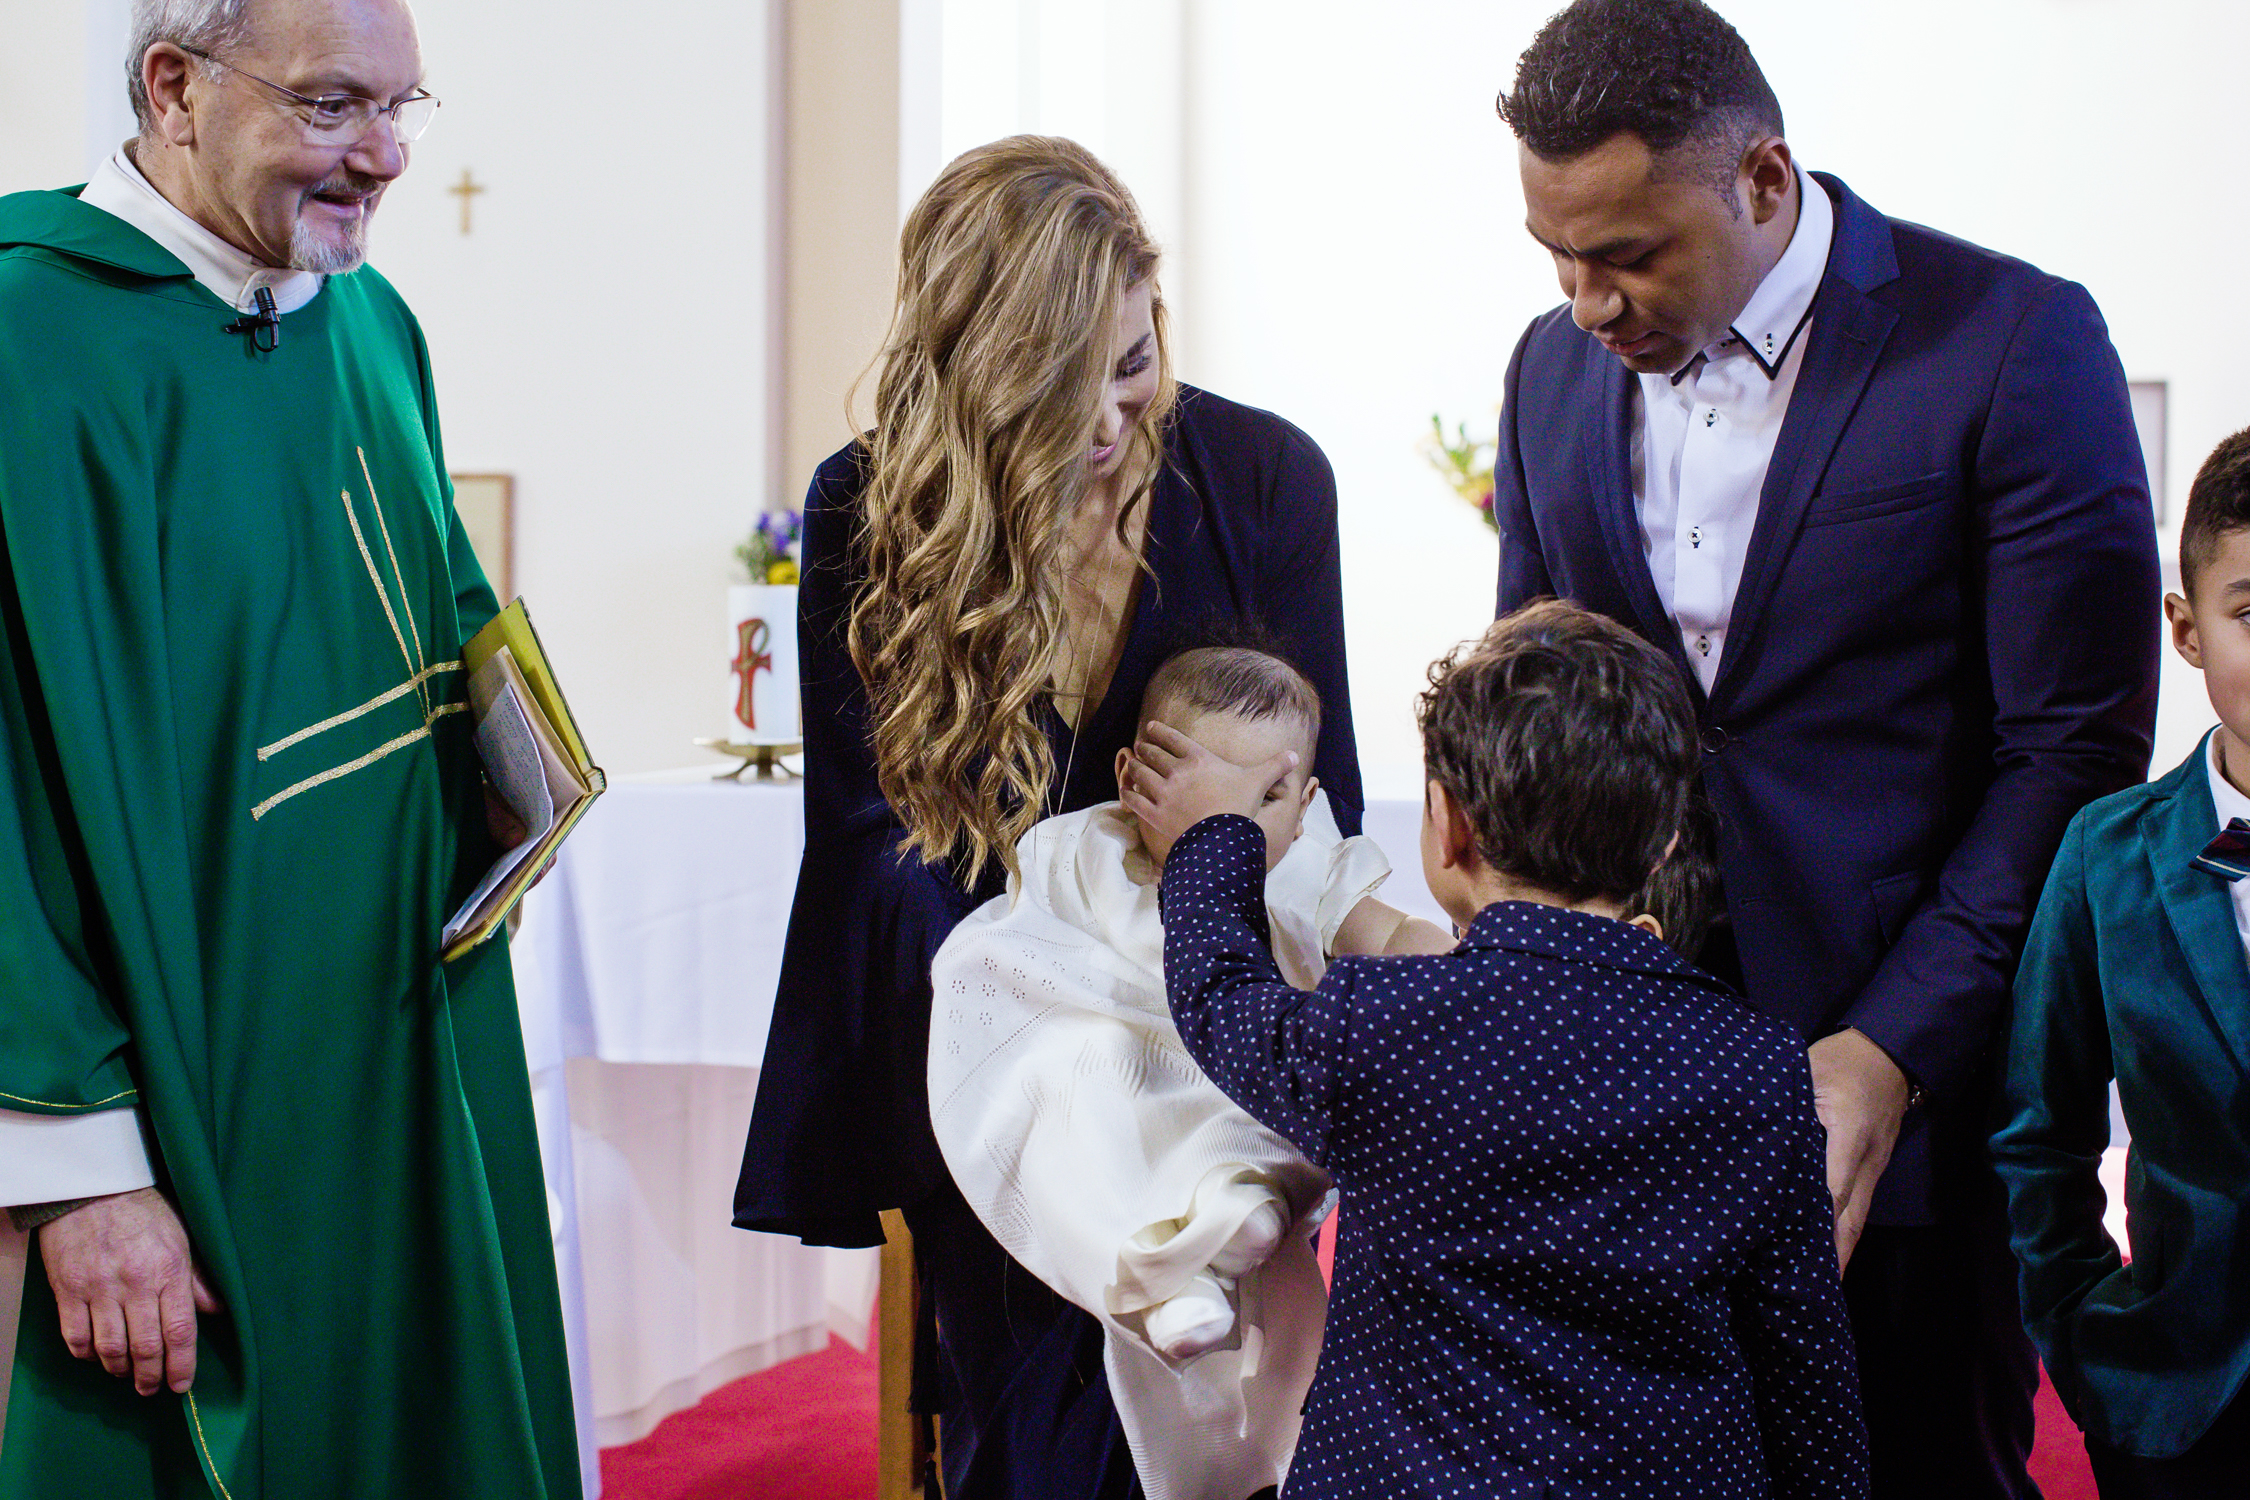 LisaFrieling_STT_Baptism_July2016_Blog-0014.jpg